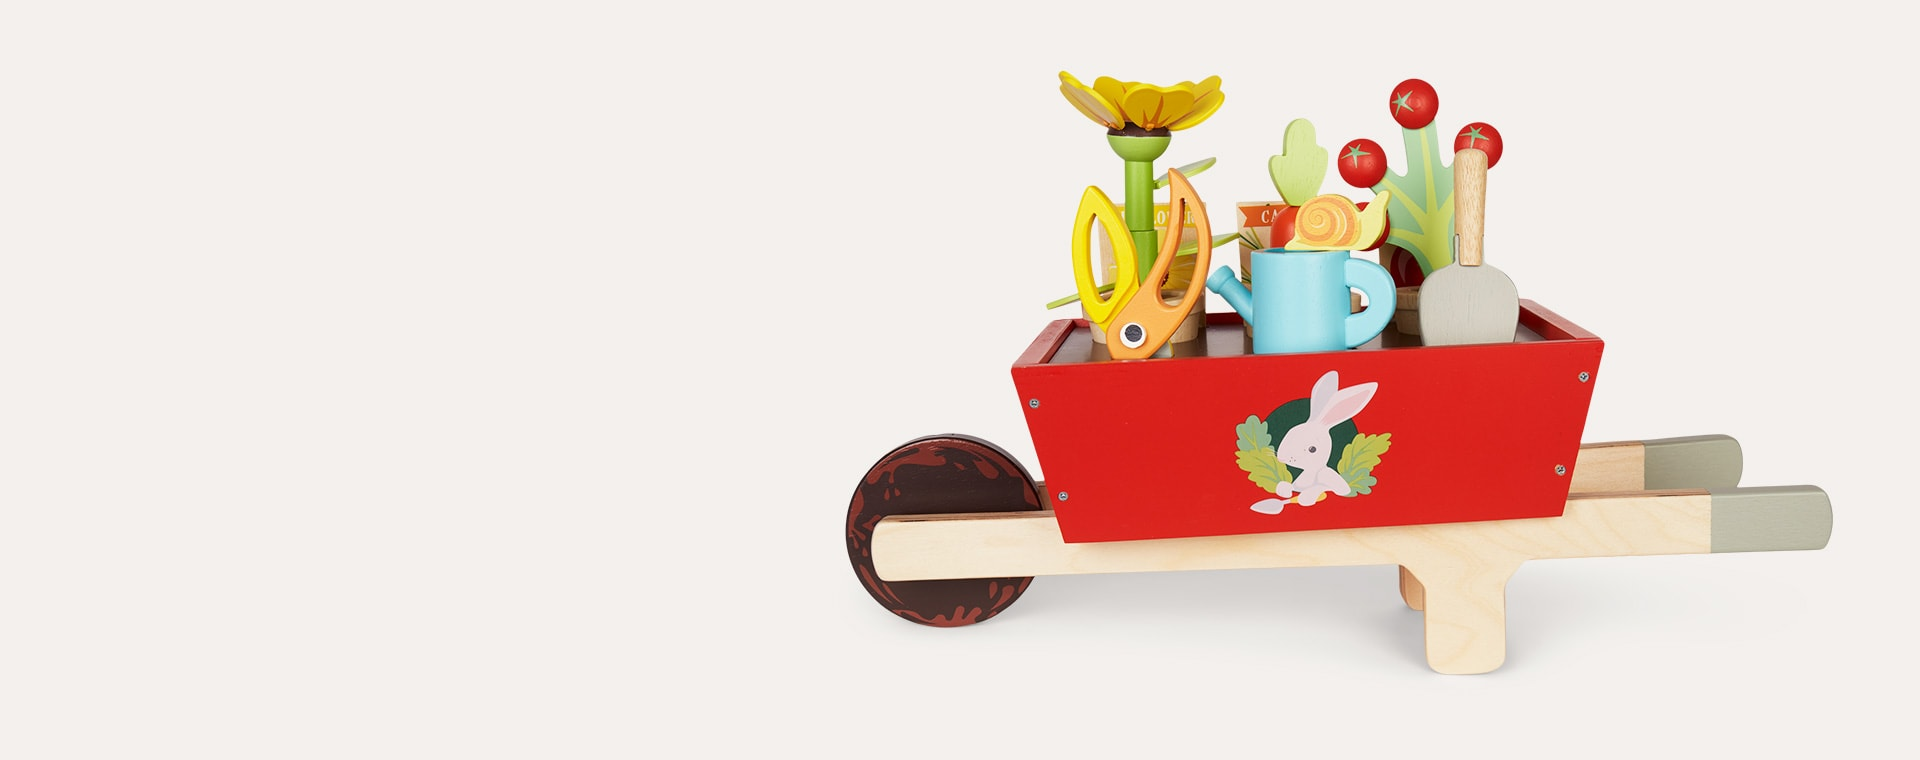 Red Tender Leaf Toys Garden Wheelbarrow Set